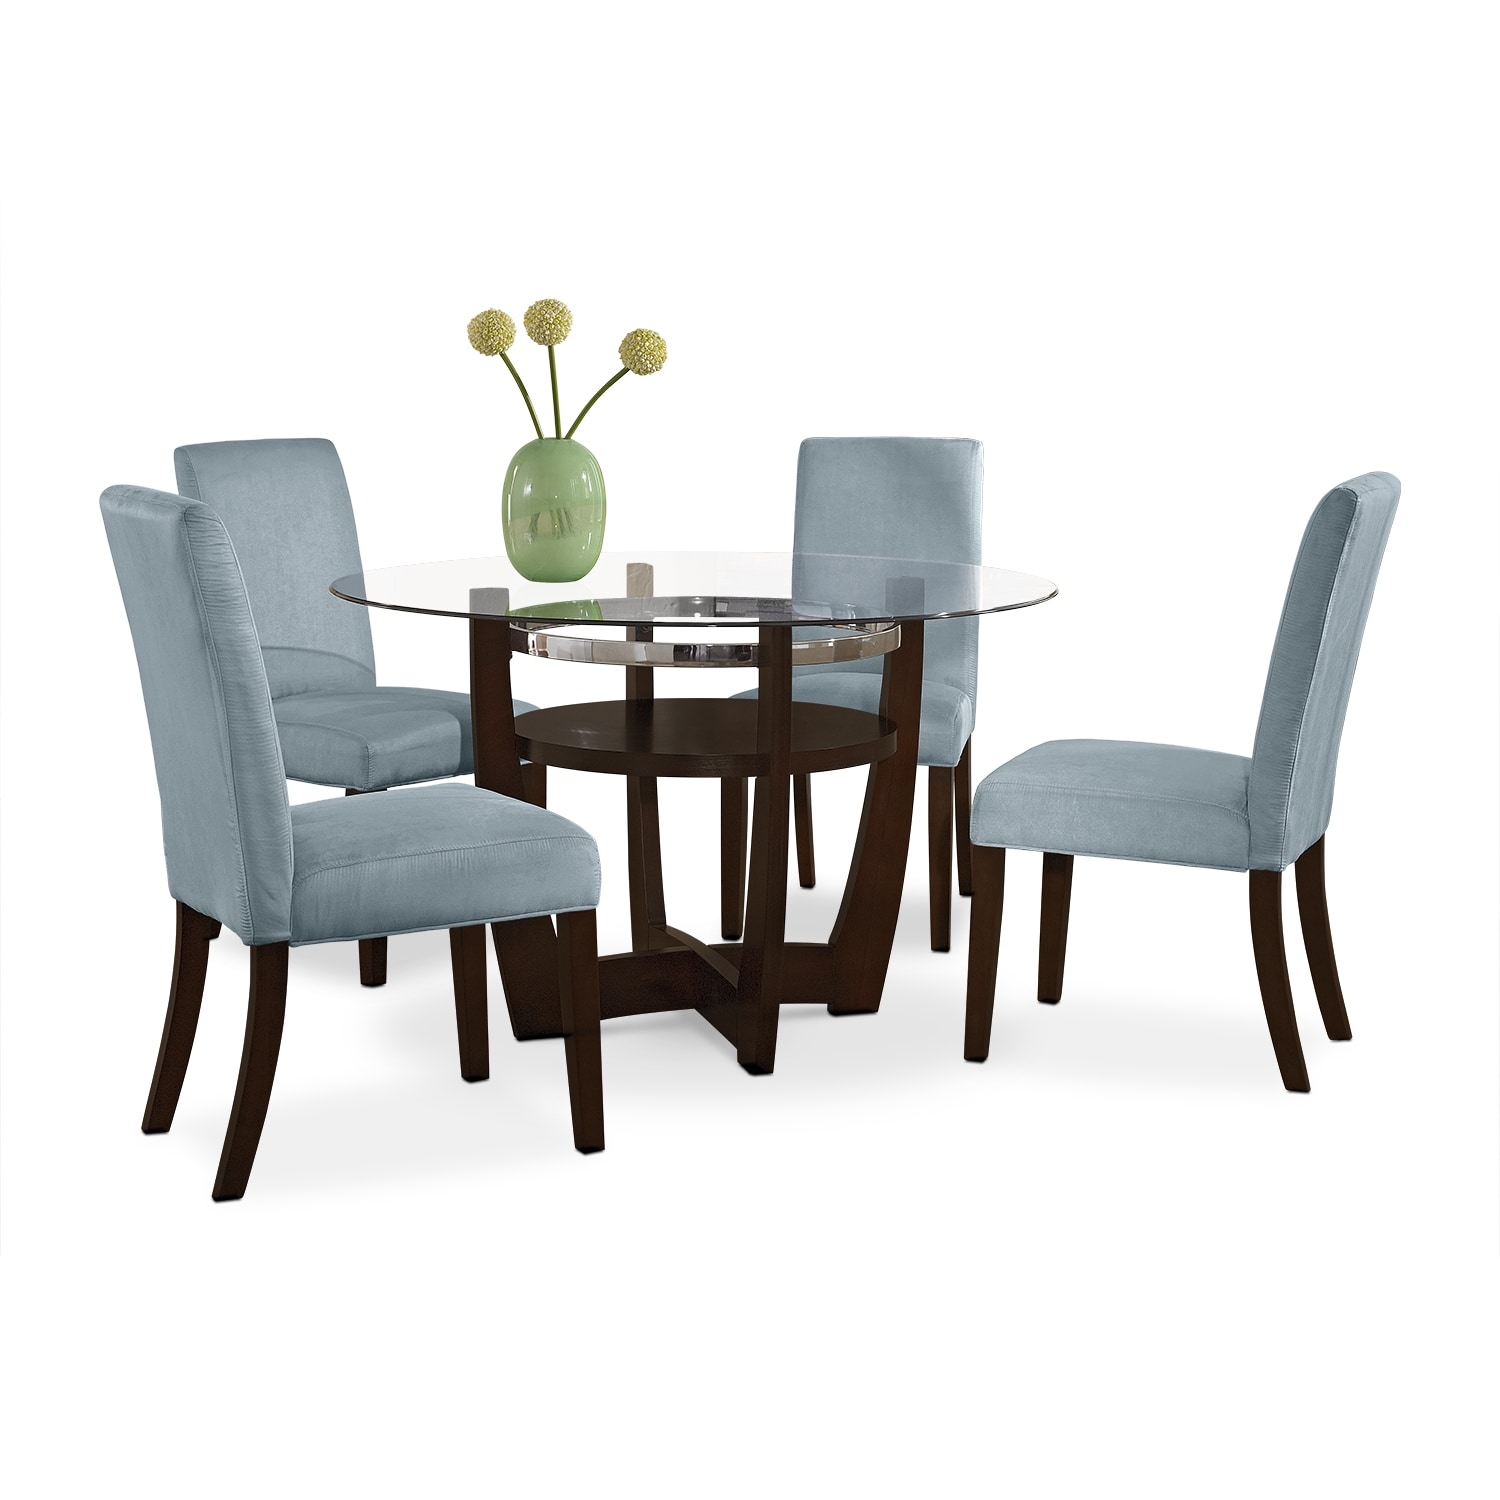 Value City Furniture Clearance Center: The Alcove Aqua Collection